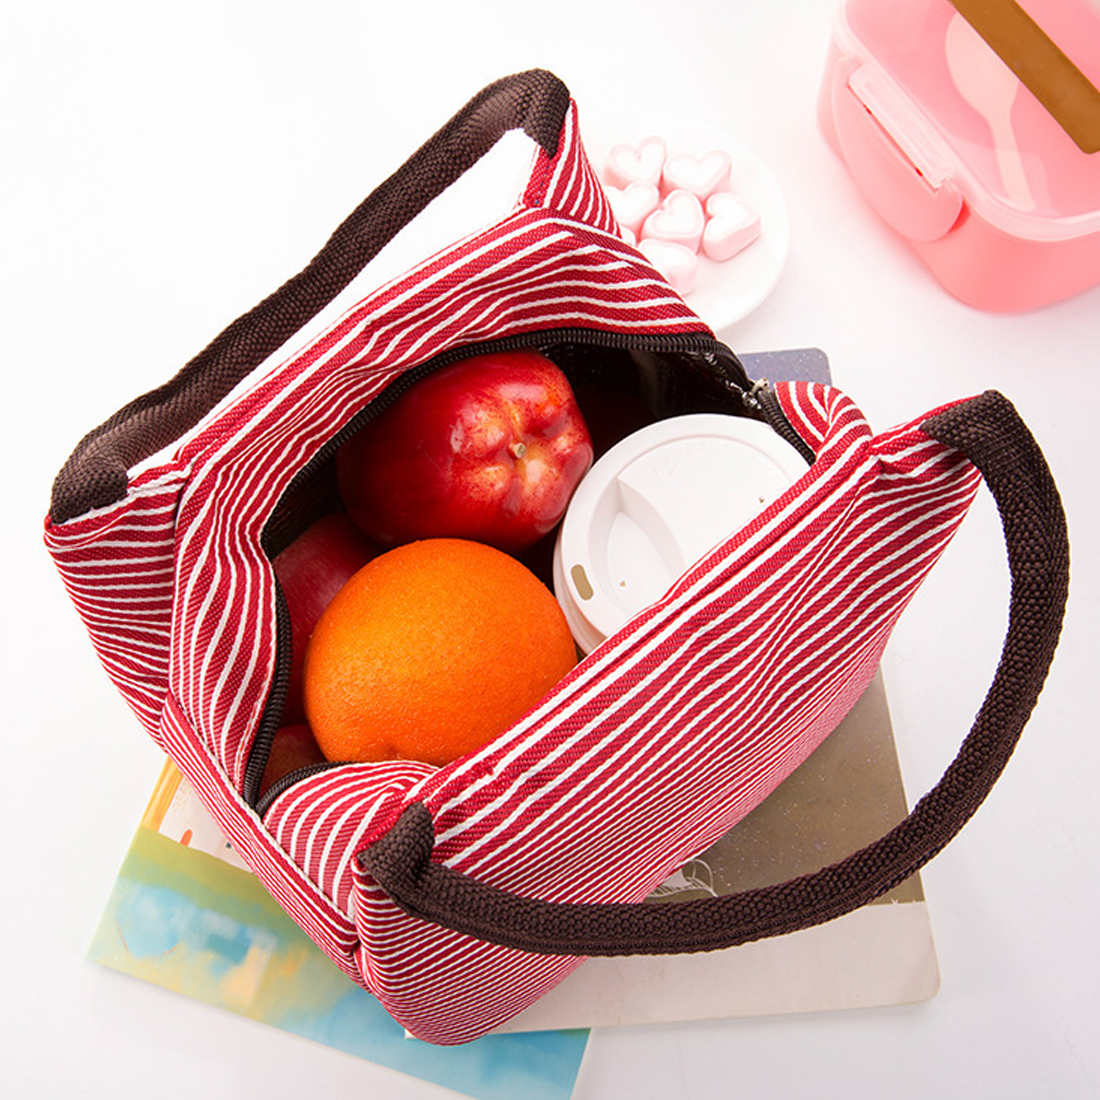 New Women Portable Lunch Bag Canvas Stripe Insulated Cooler Bags Thermal Food Picnic Lunch Bags Kids Lunch Box Bag Tote